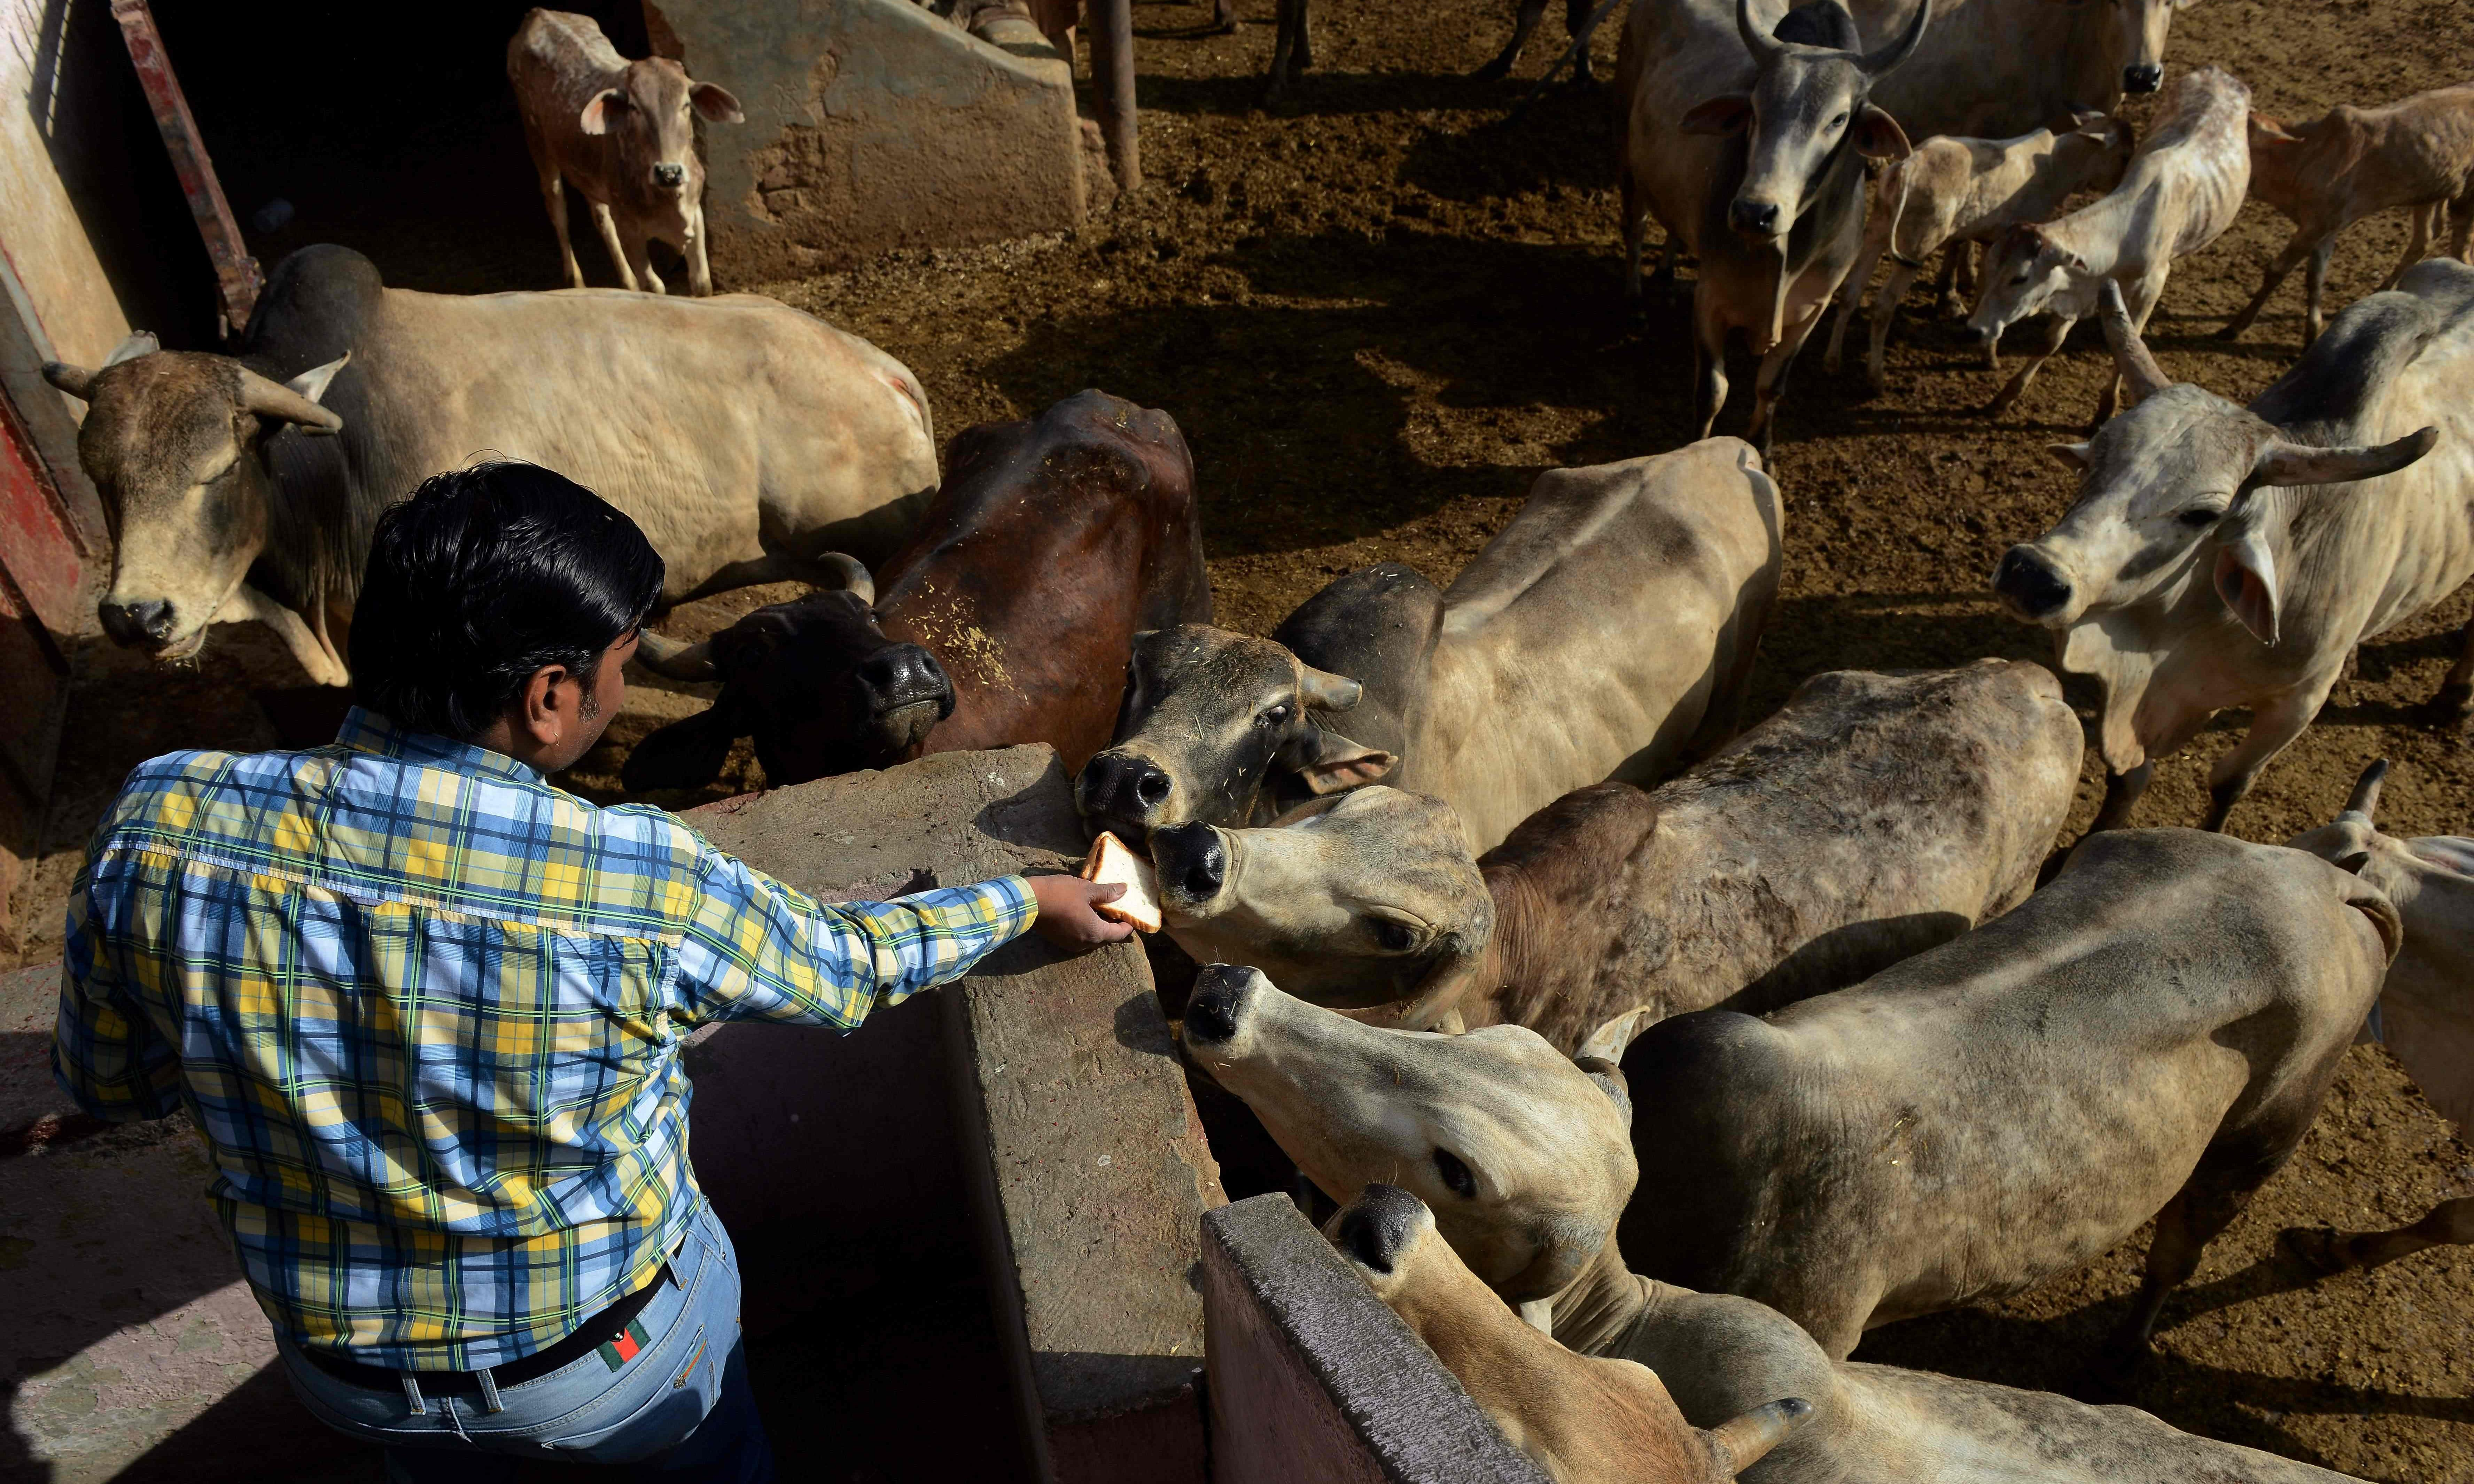 Indian mob beats two Muslims to death over suspected cow theft